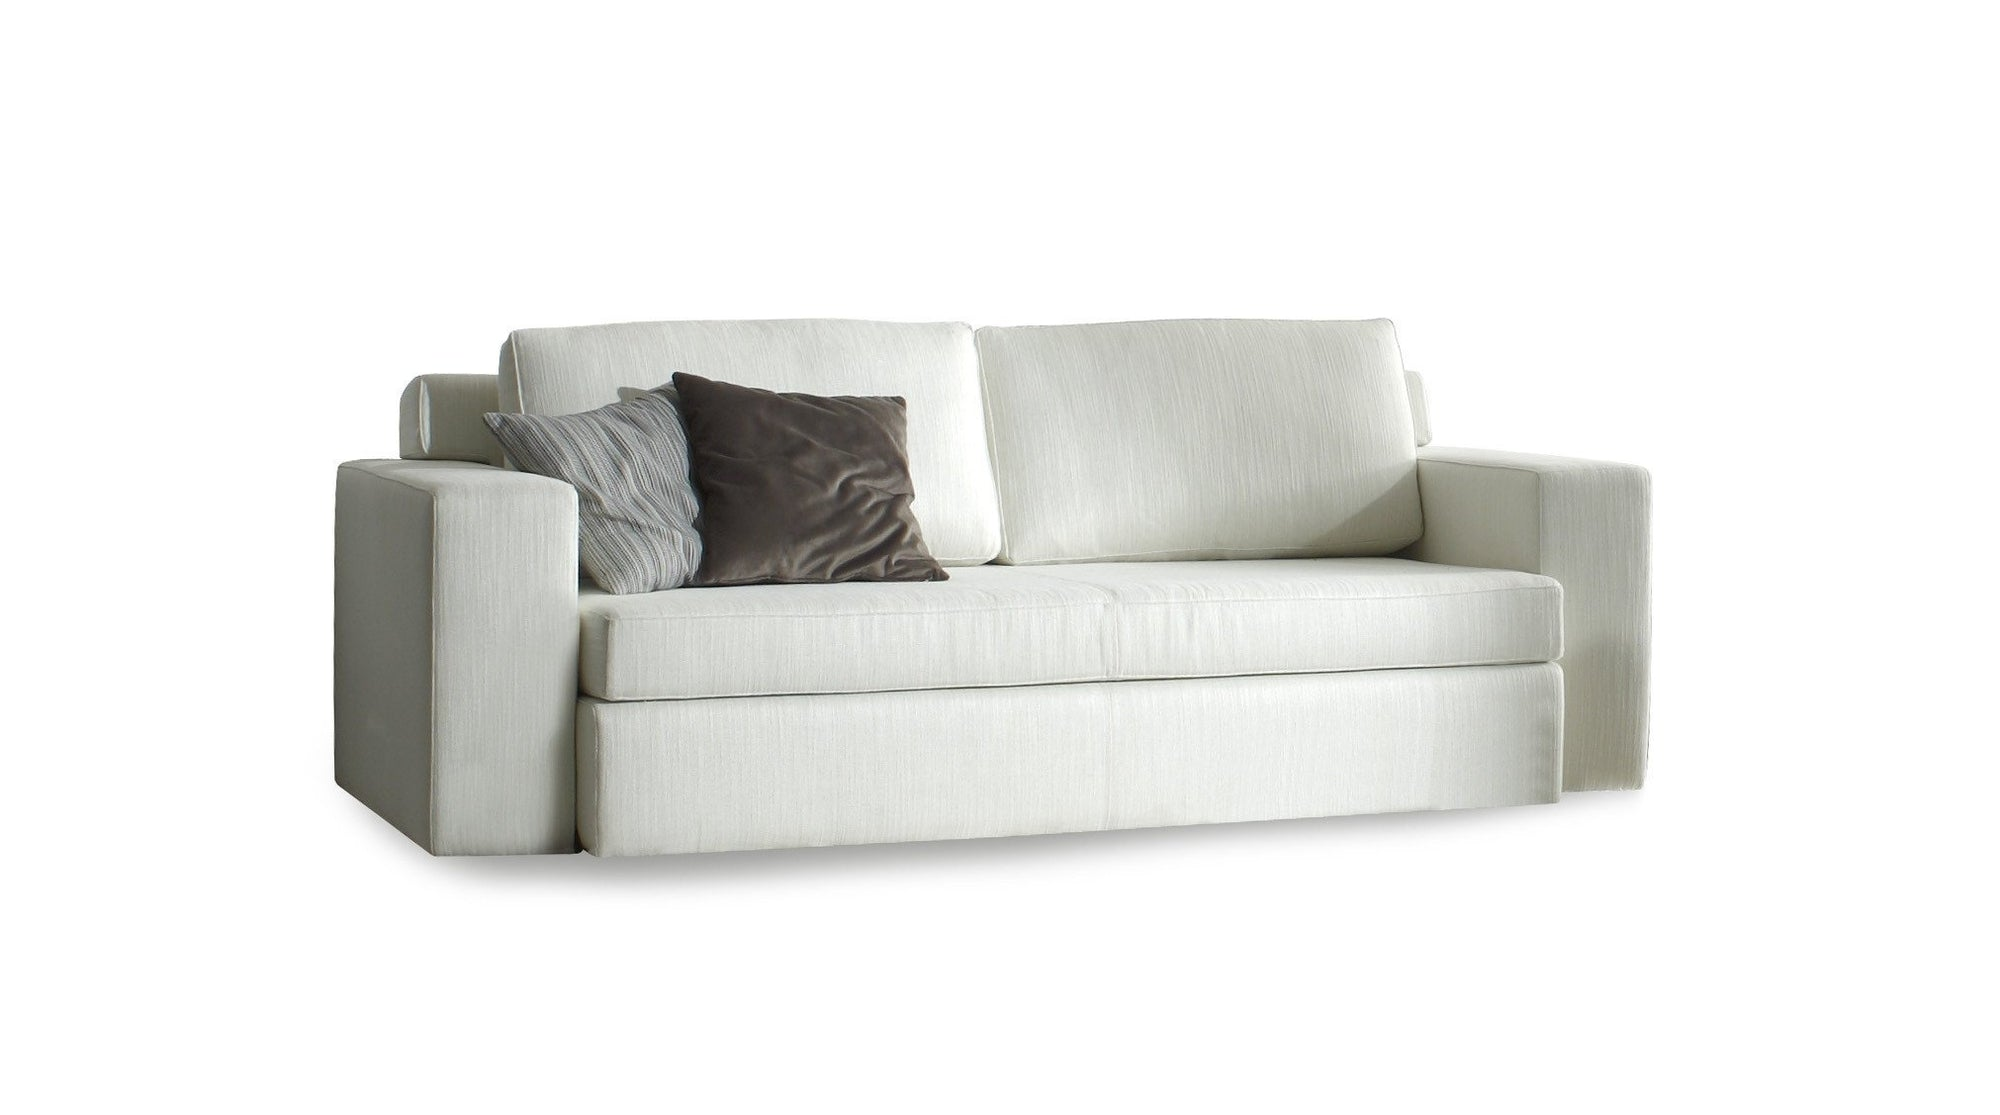 Doblo Sofa Bed-Sancal-Contract Furniture Store